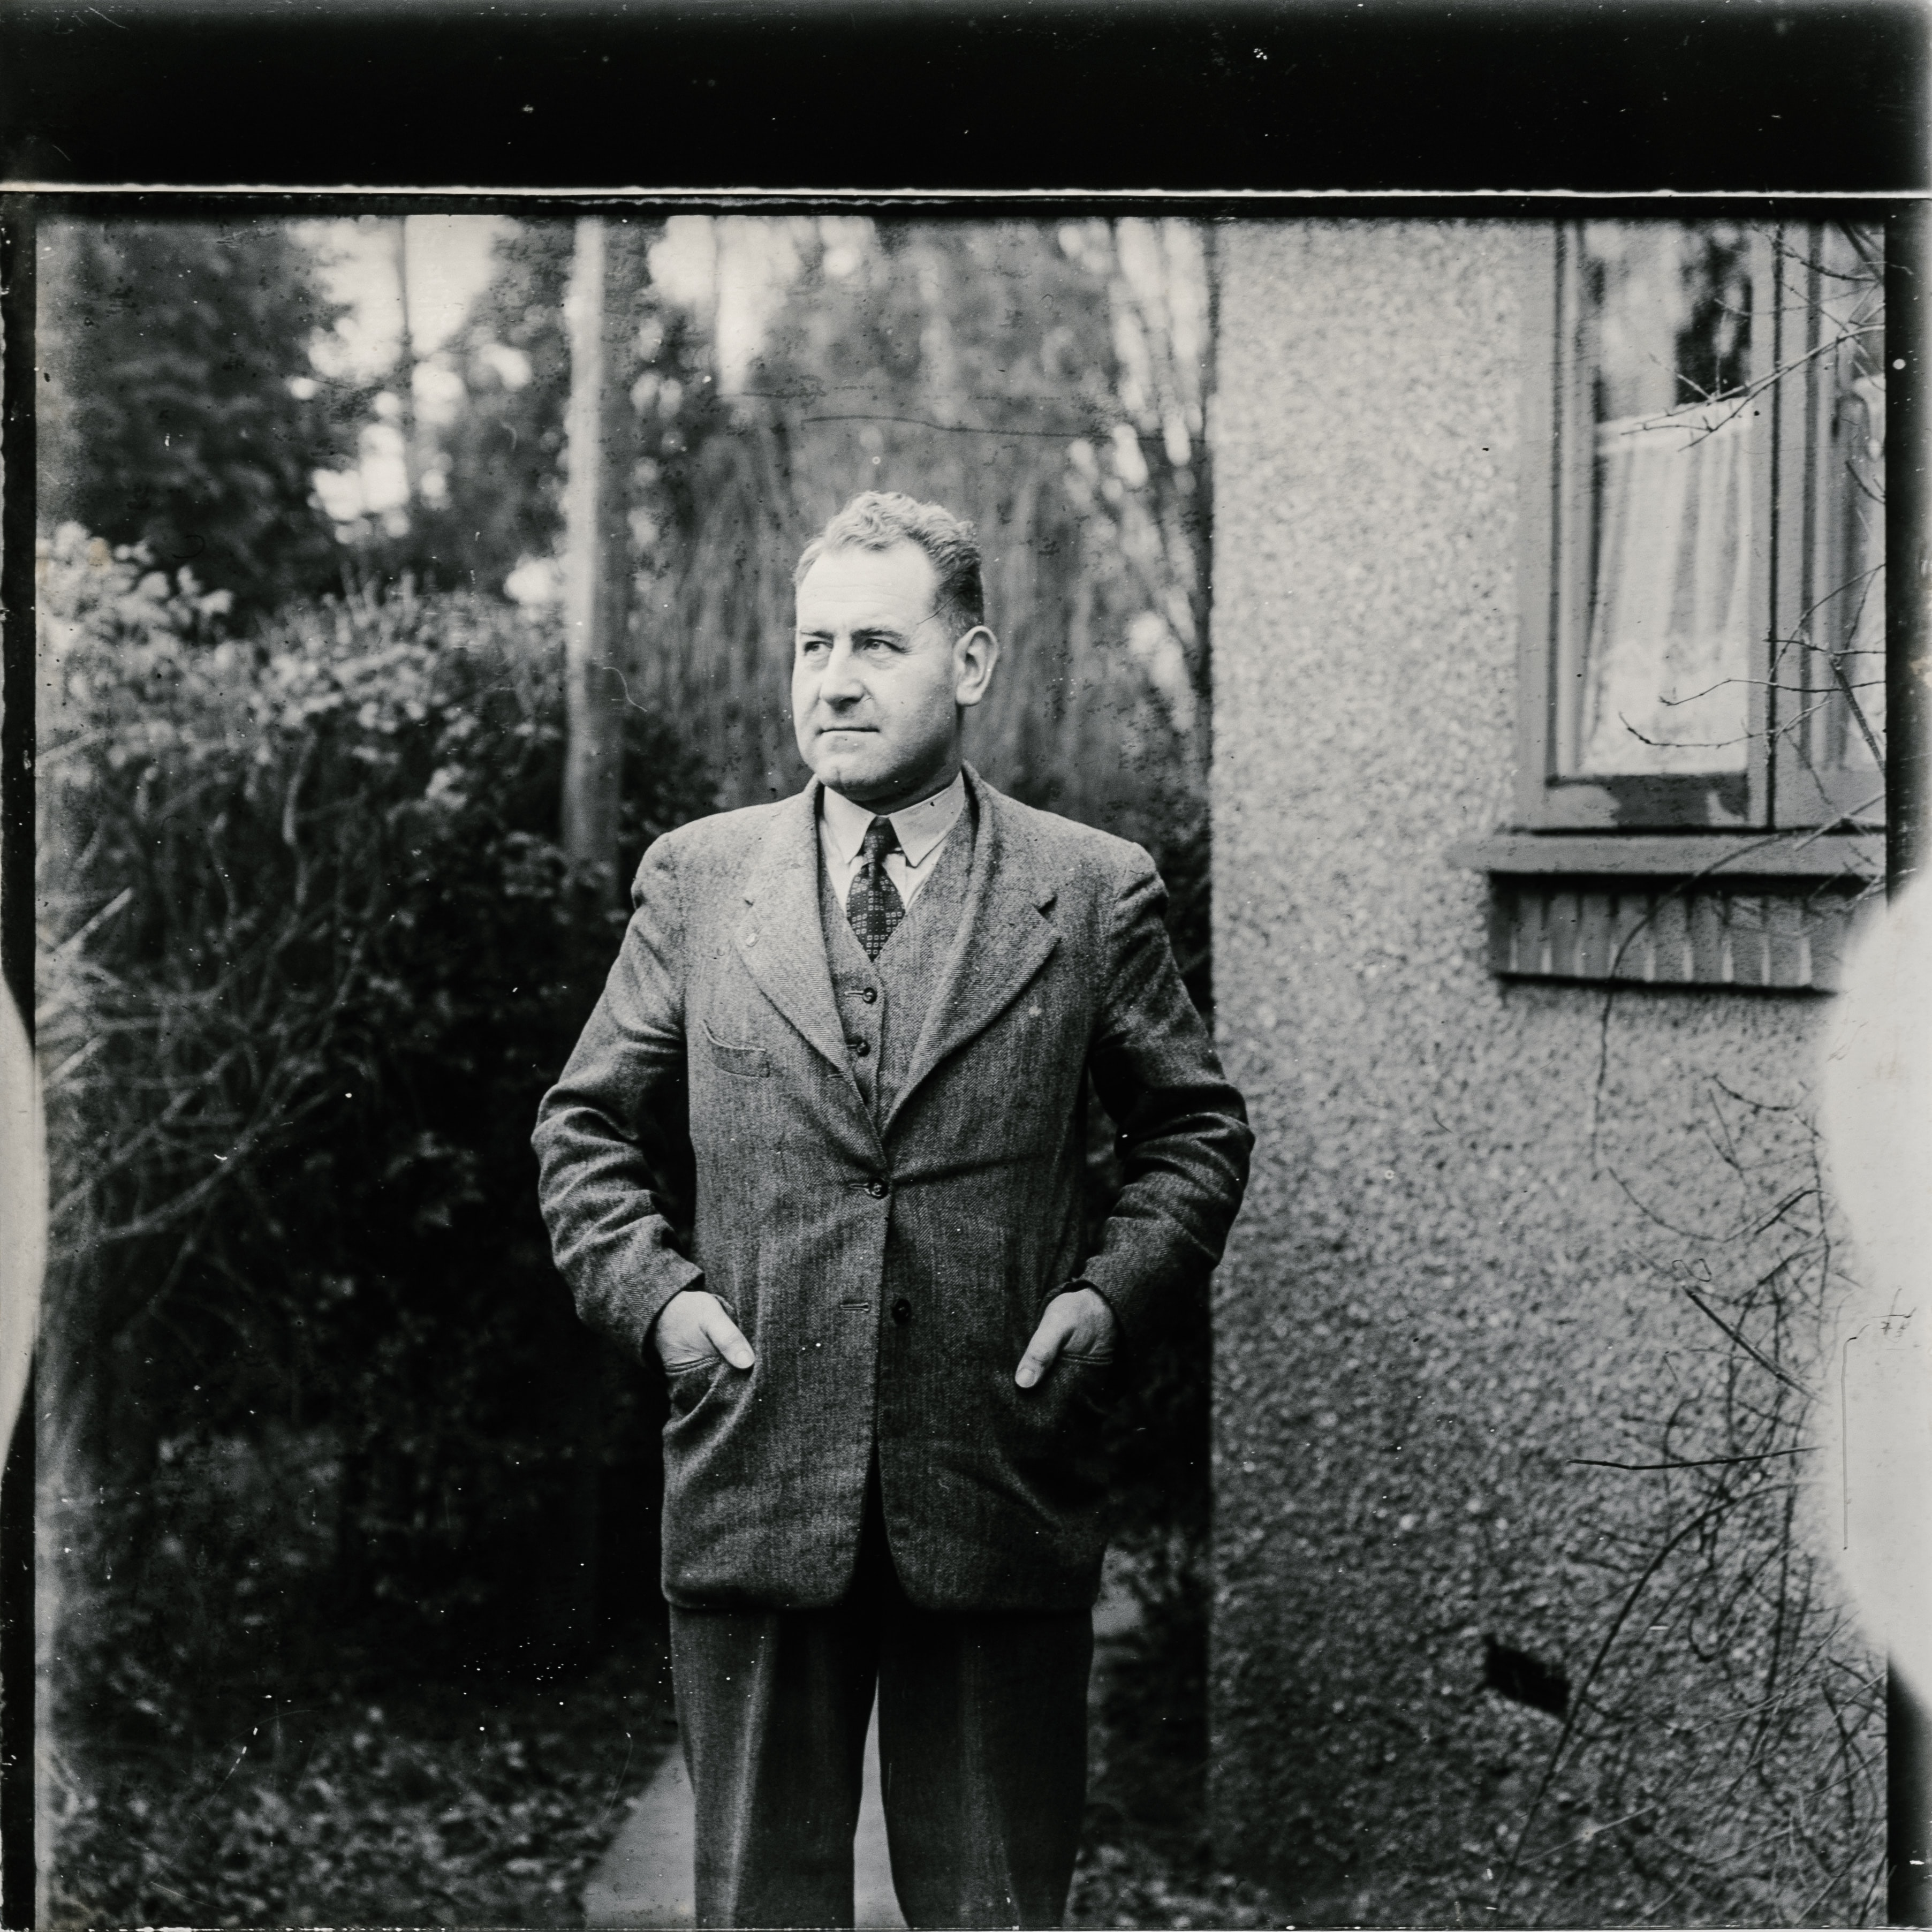 grayscale photo of man wearing suit standing beside wall with mirror